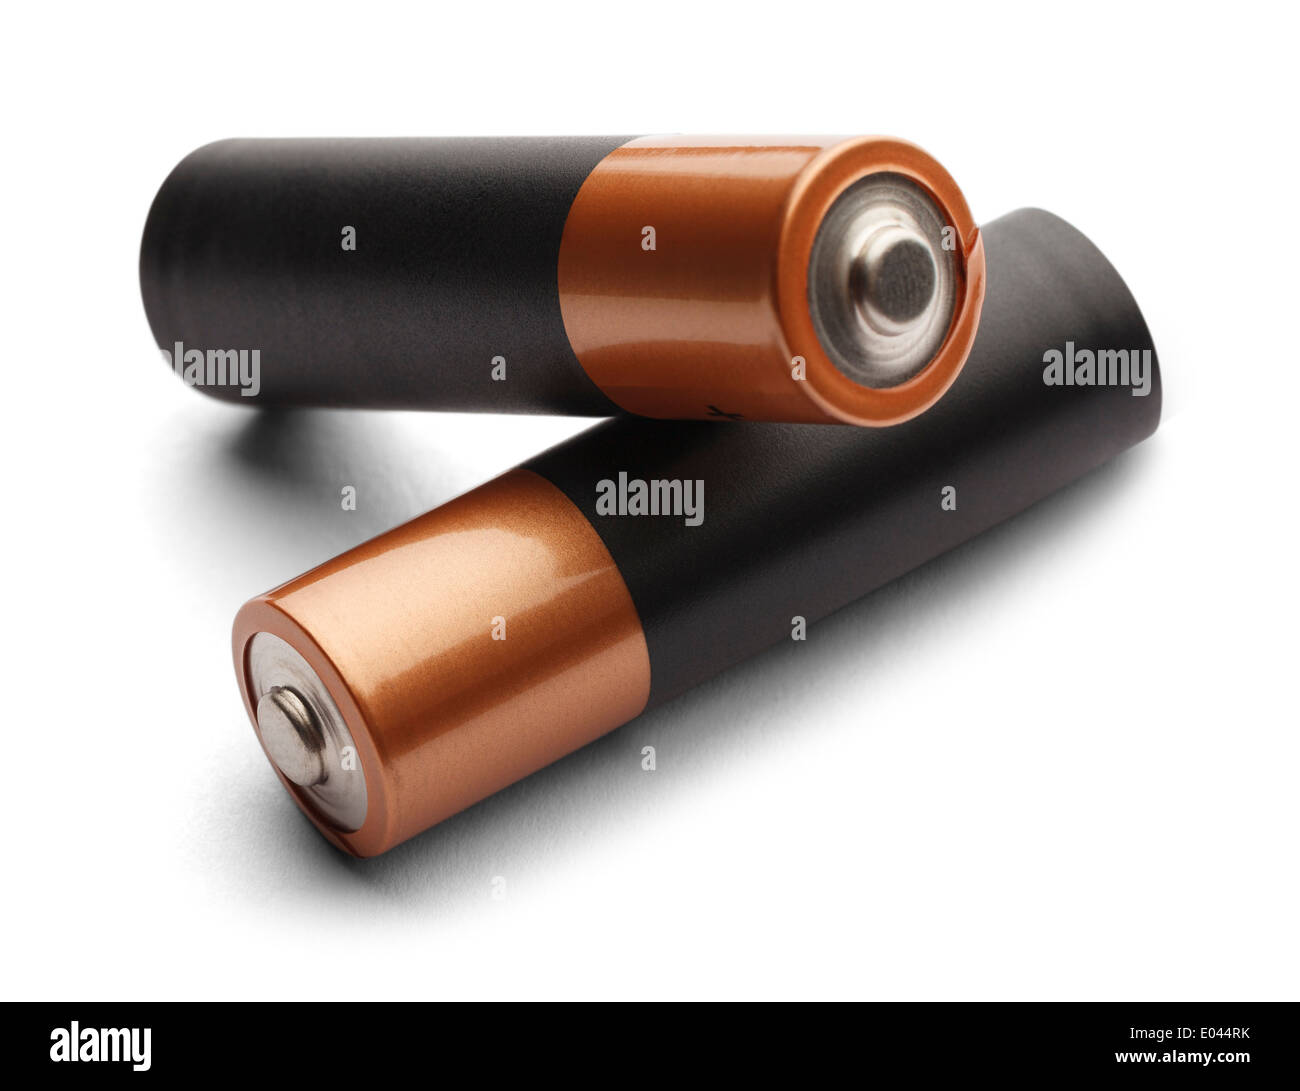 Blank AA Batteries Stacked on Each Other with Copy Space Isolated on White Background. - Stock Image